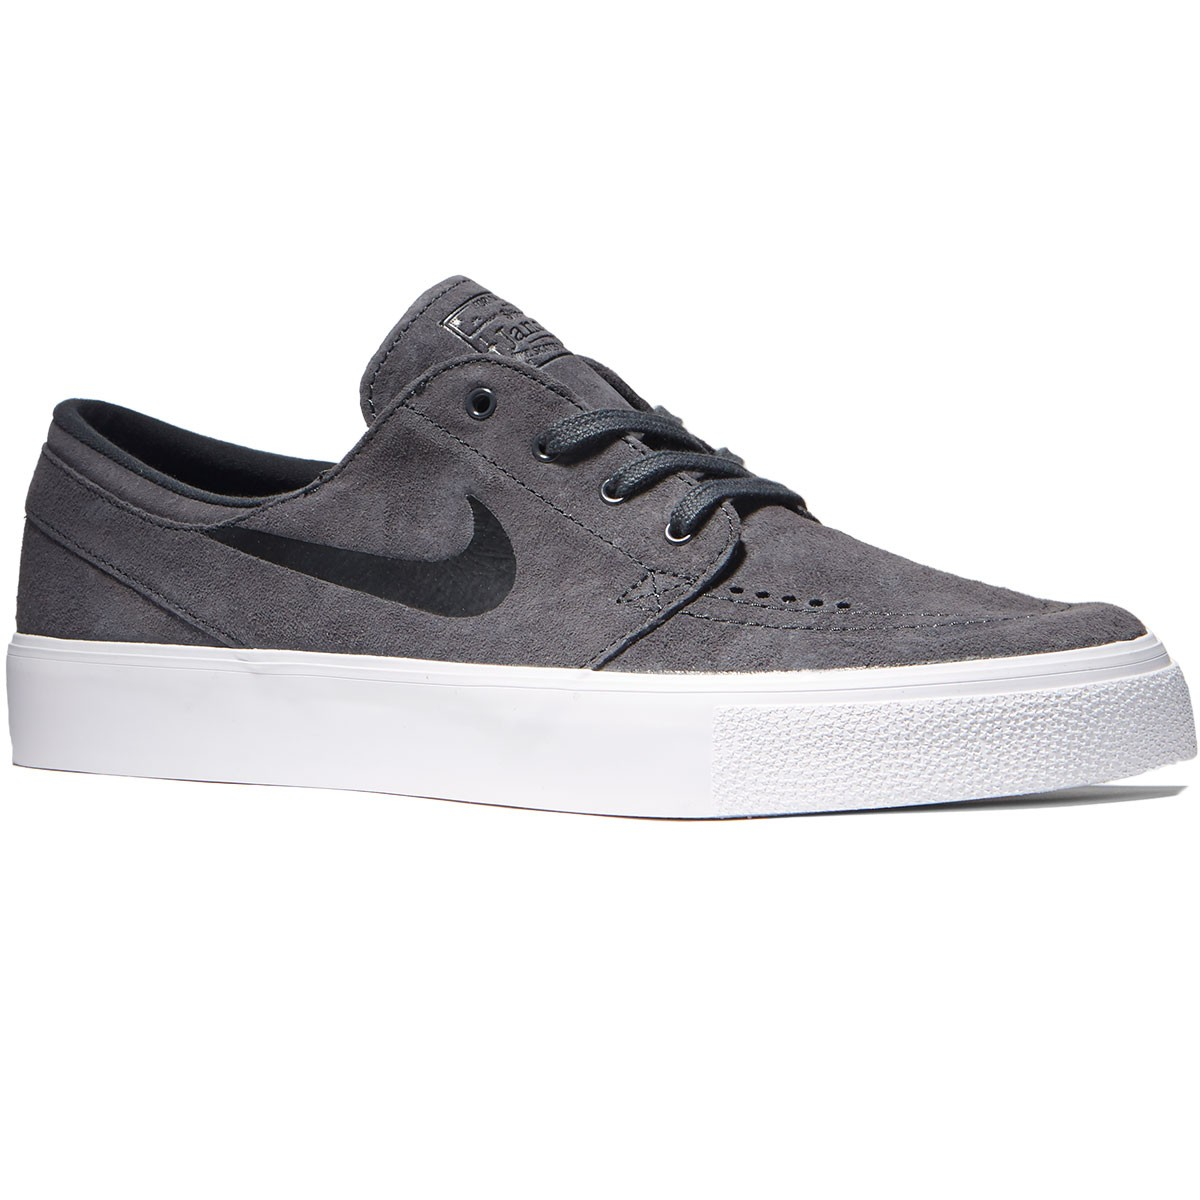 2b2703cafc Nike Zoom Stefan Janoski Canvas Premium Shoes - Green/Black/White